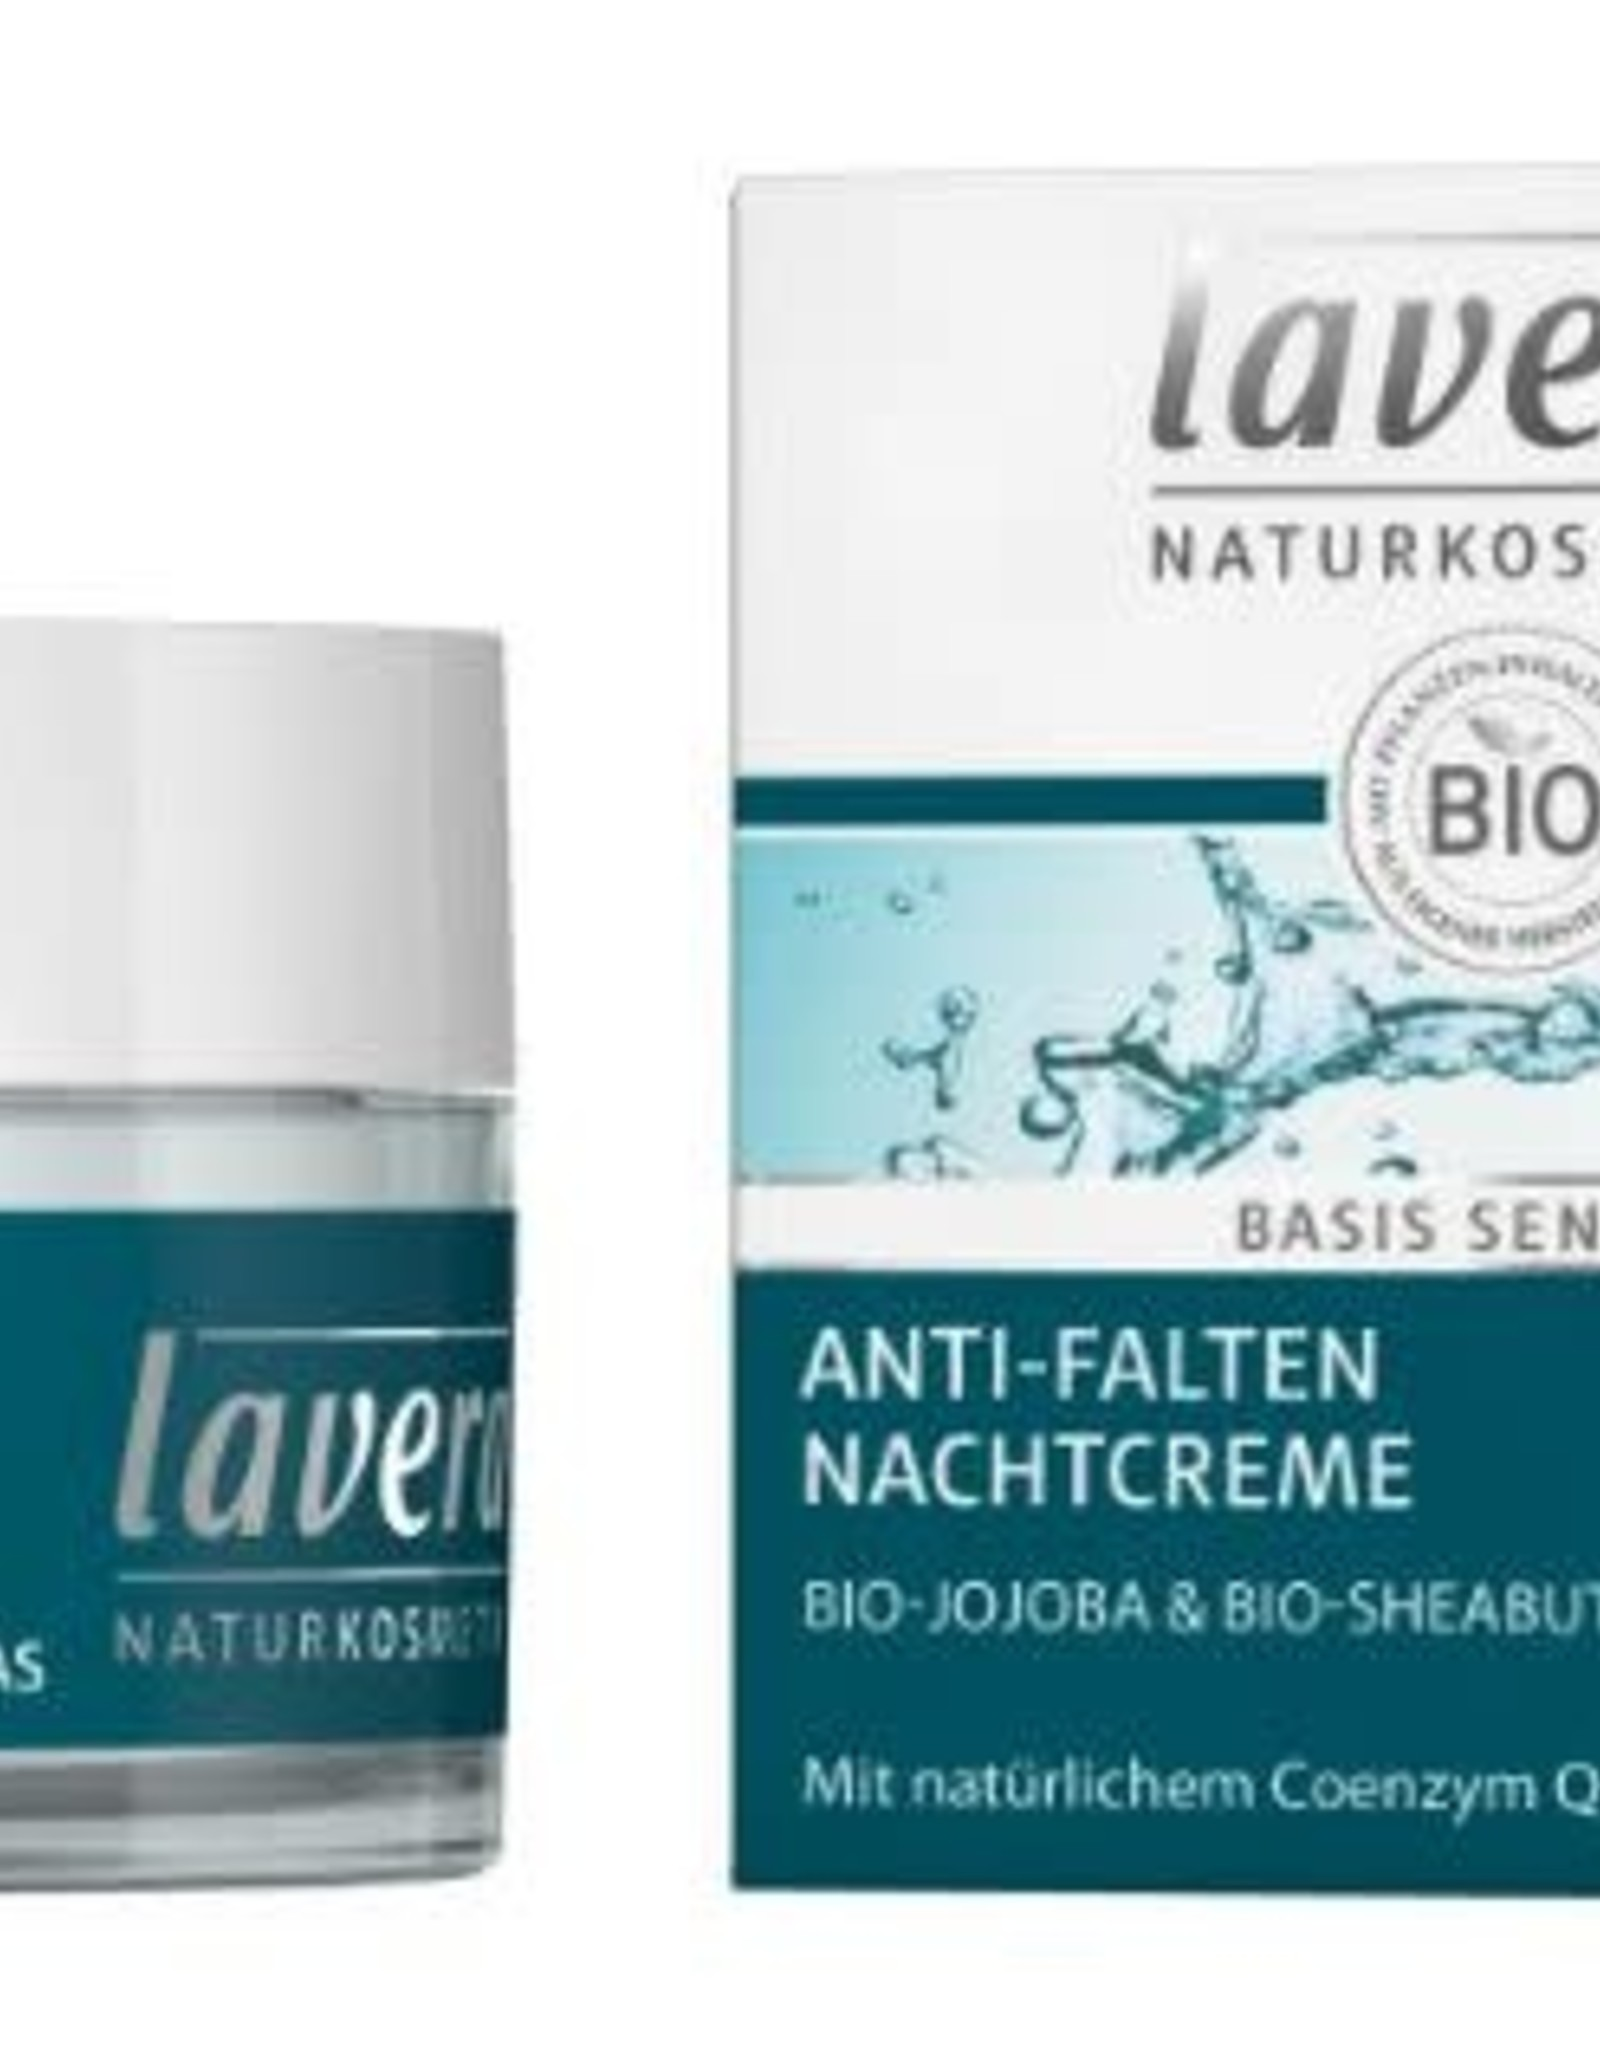 Lavera Basis Sensitiv nachtcreme/night cream 50 ml